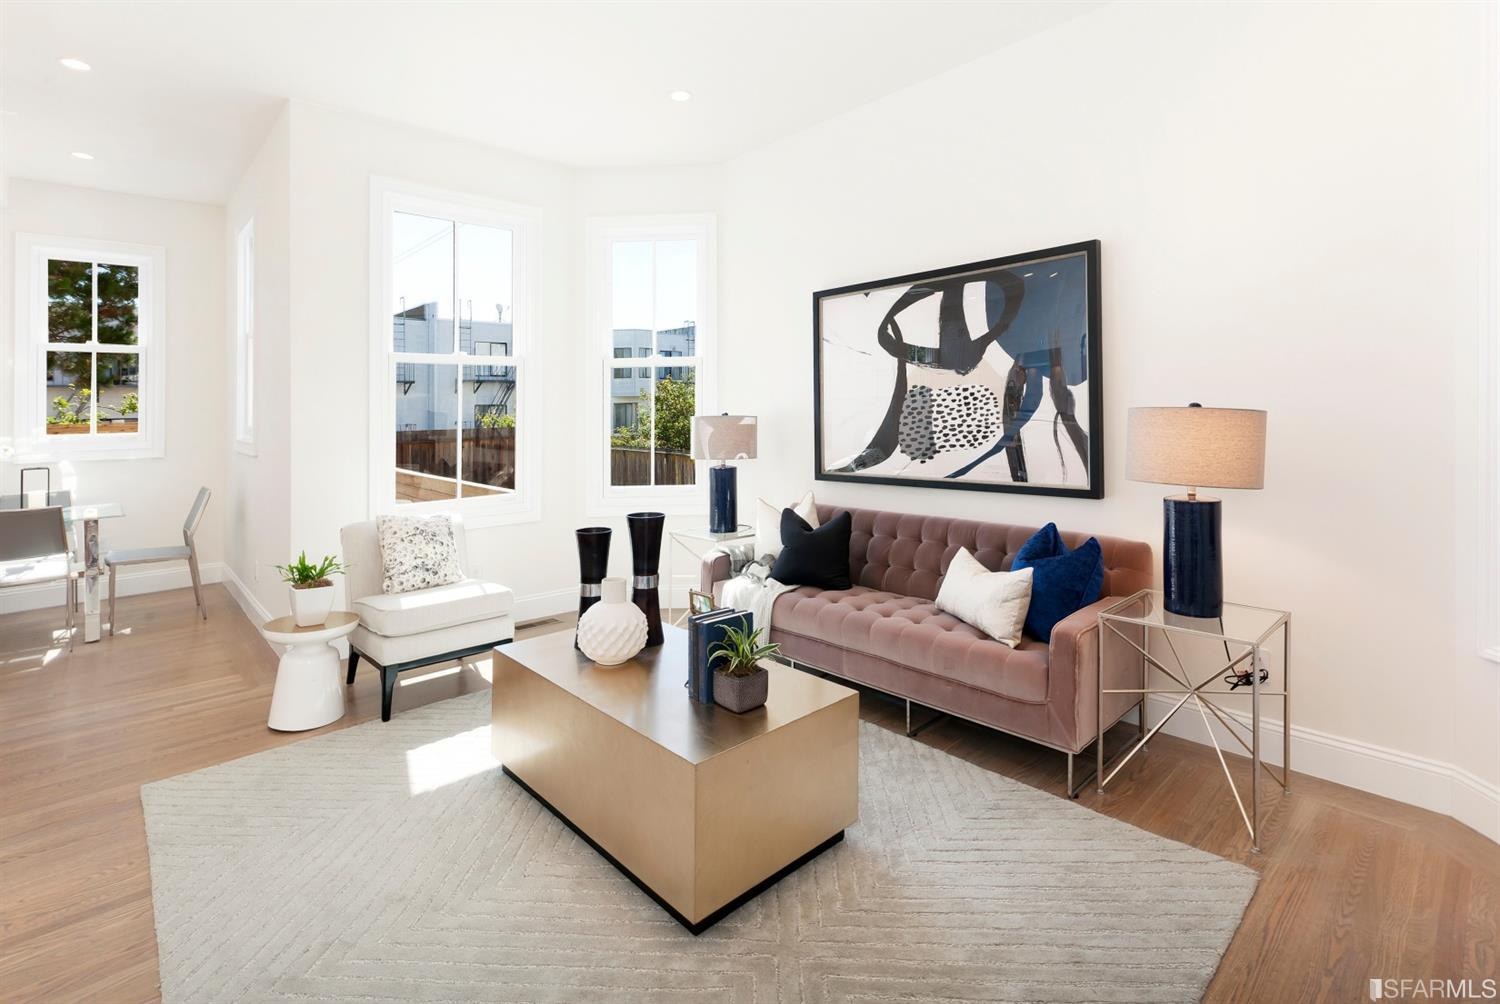 262 6th Avenue  3 Bed | 2.5 bath | Sold for $1,800,000